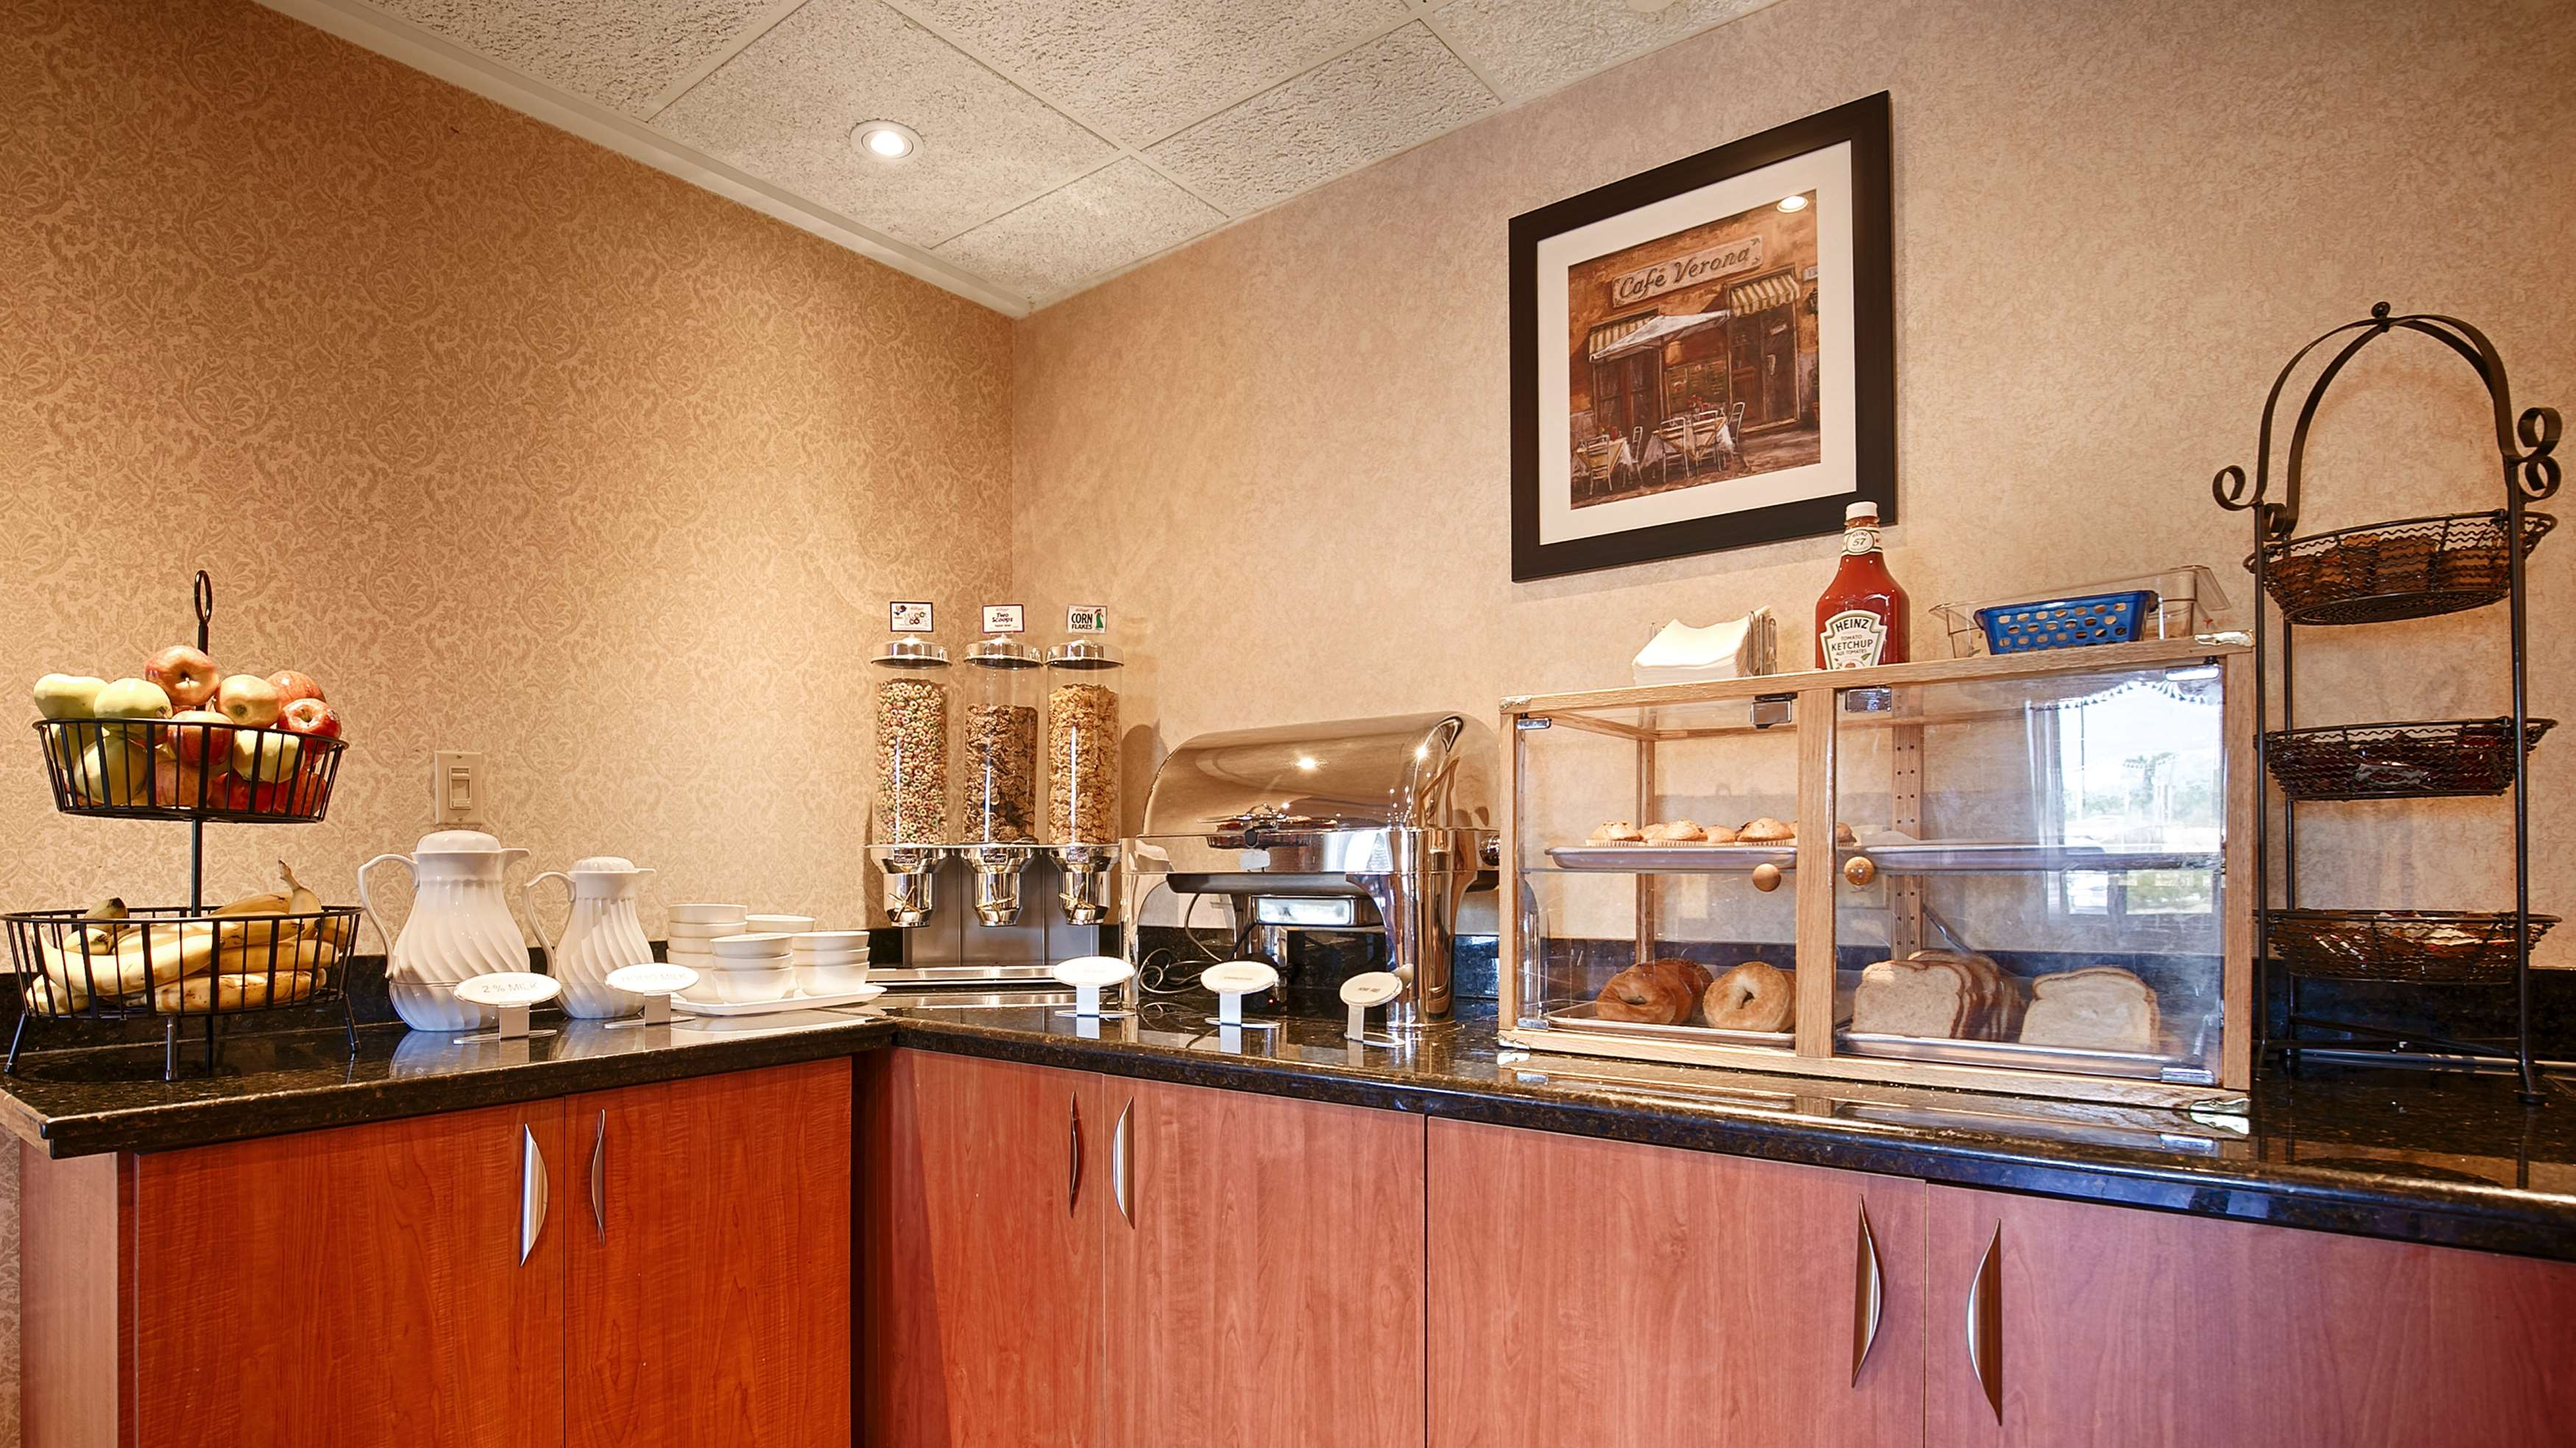 Breakfast Area Best Western Plus Burlington Inn & Suites Burlington (905)639-2700